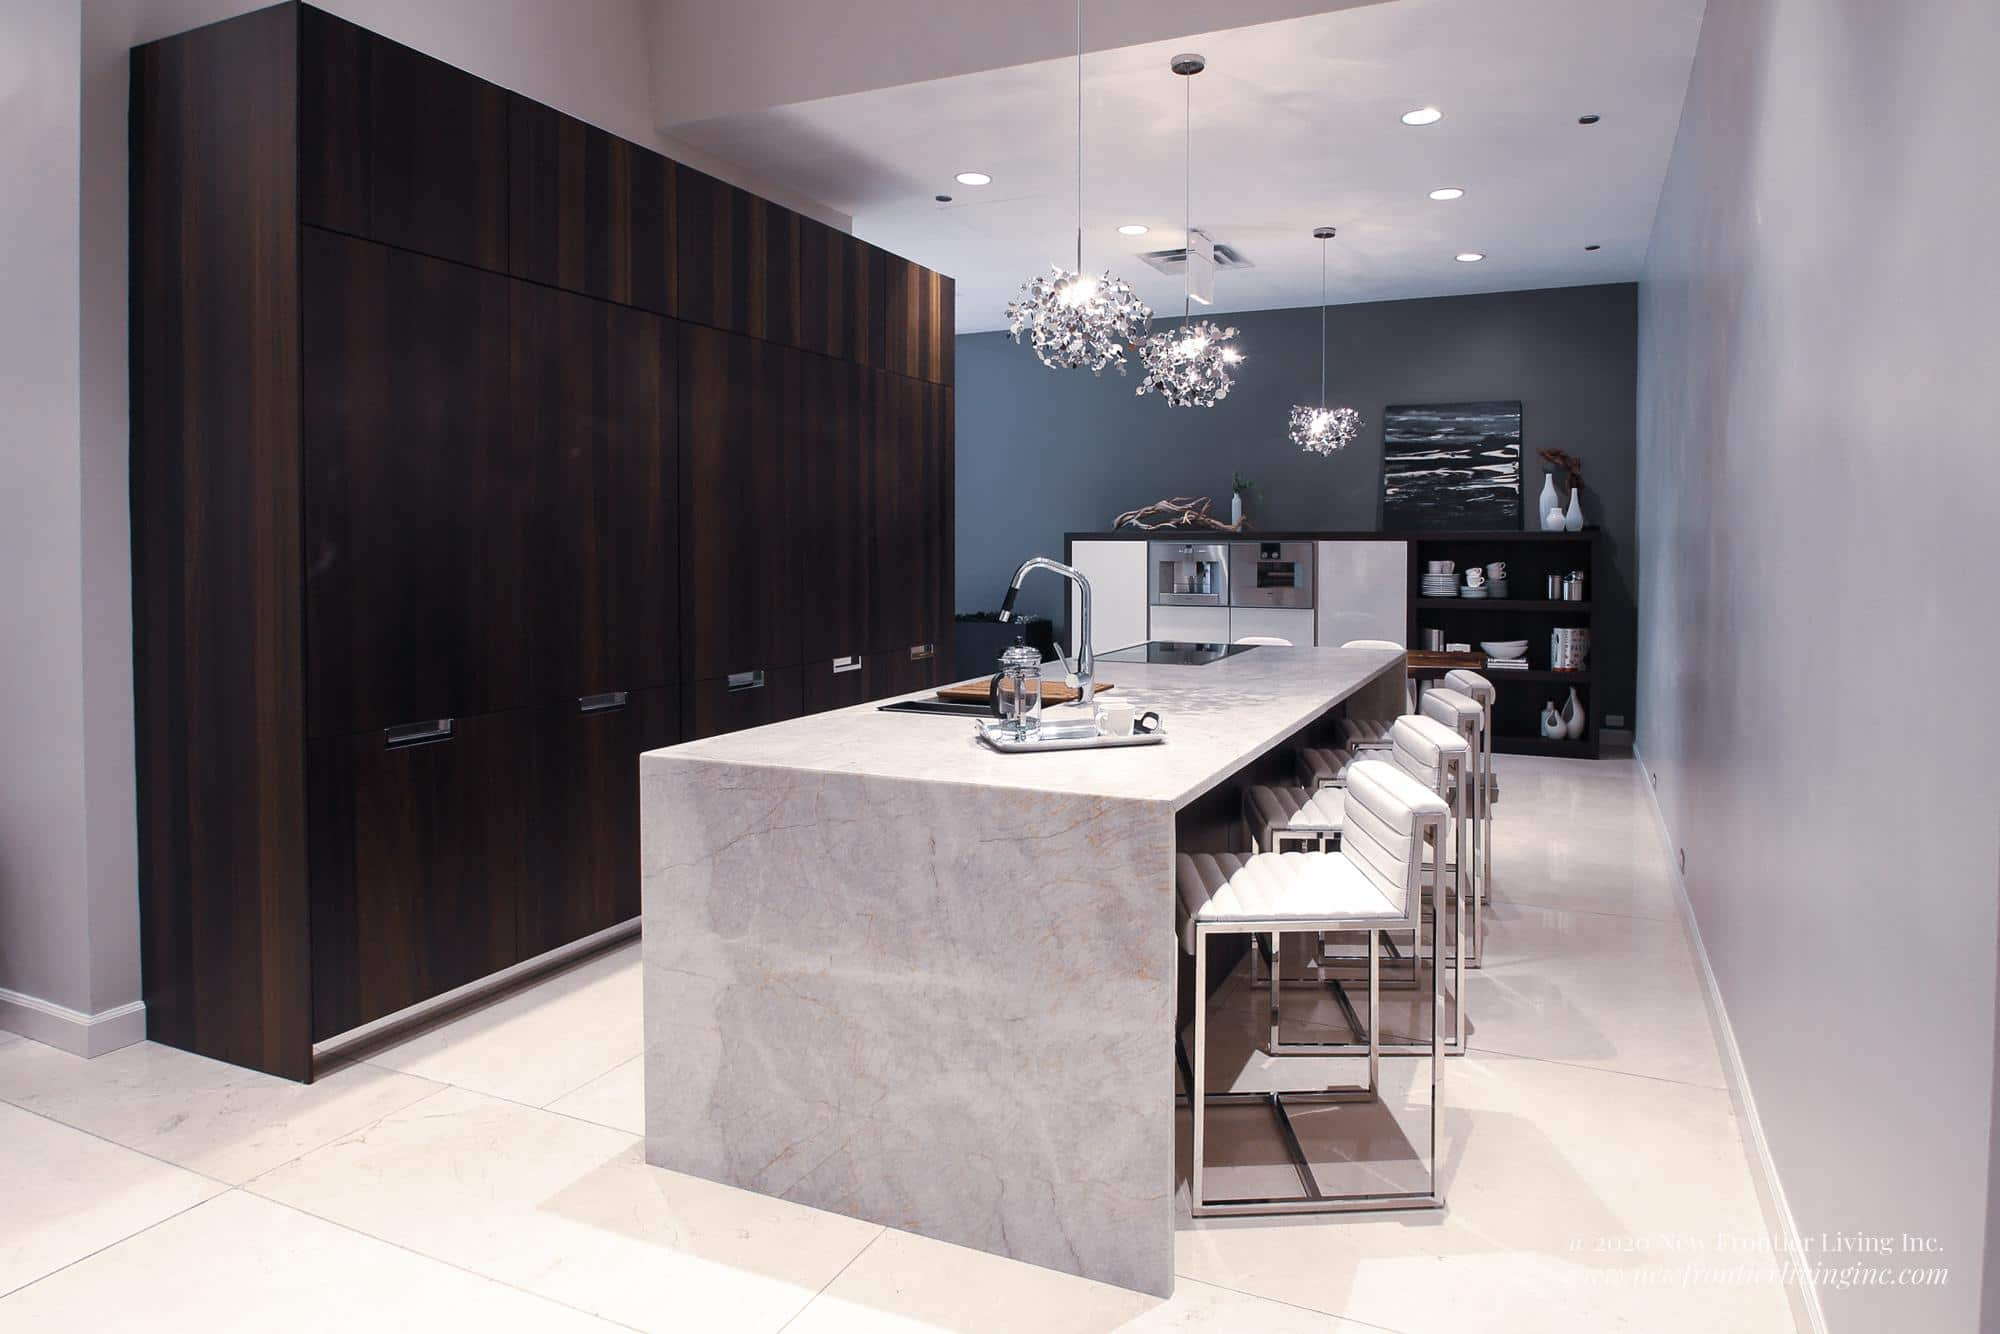 Black kitchen with a cream waterfall island and four stools